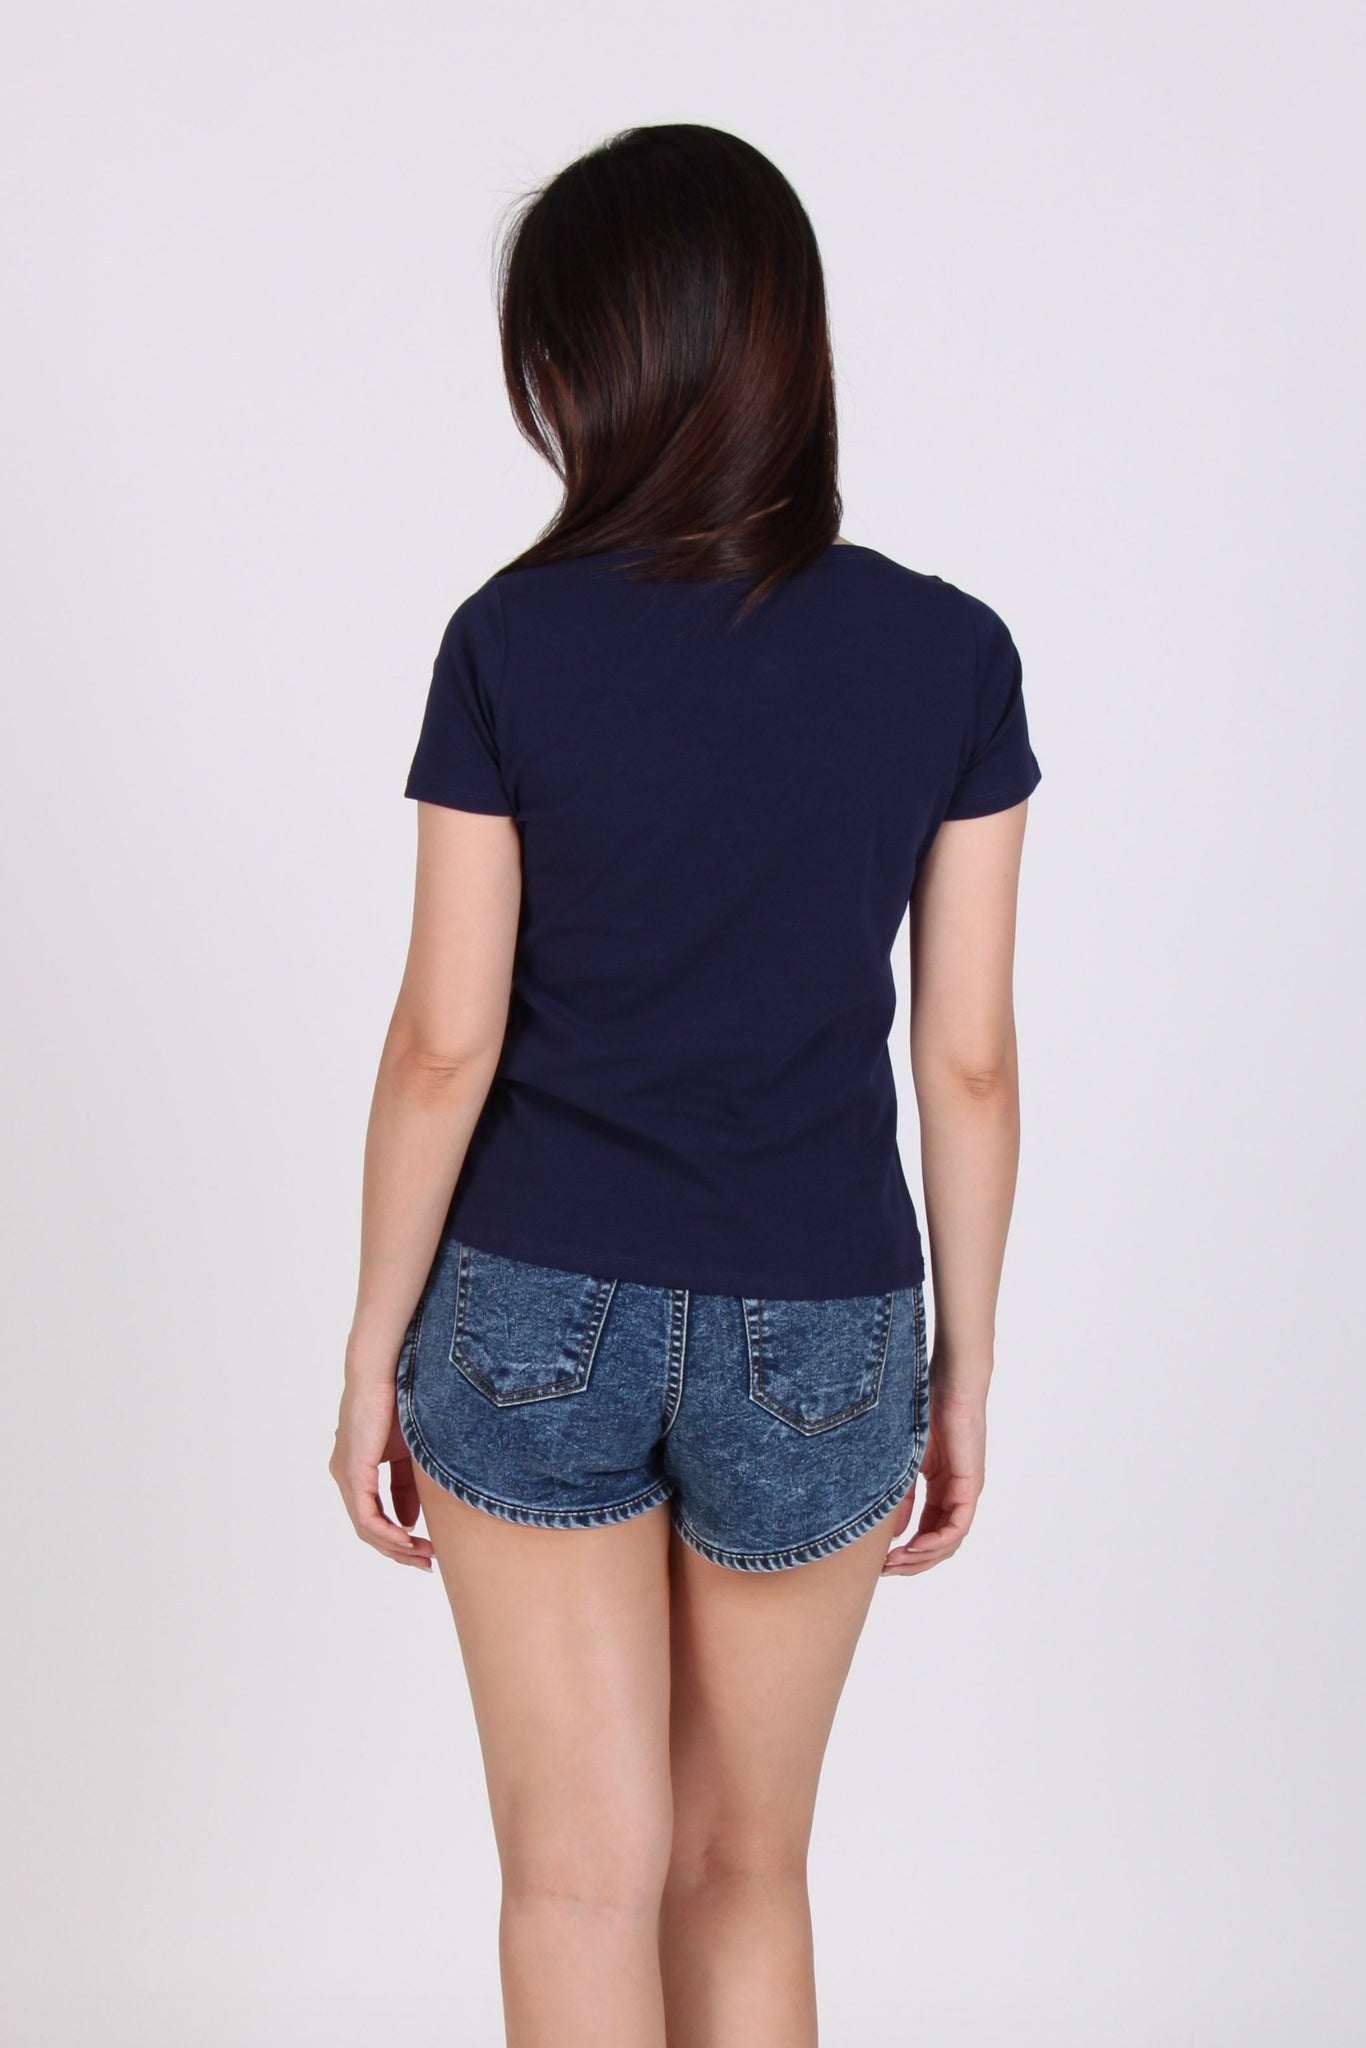 Basic Boat Neck Short Sleeve Cotton Top In Navy Blue